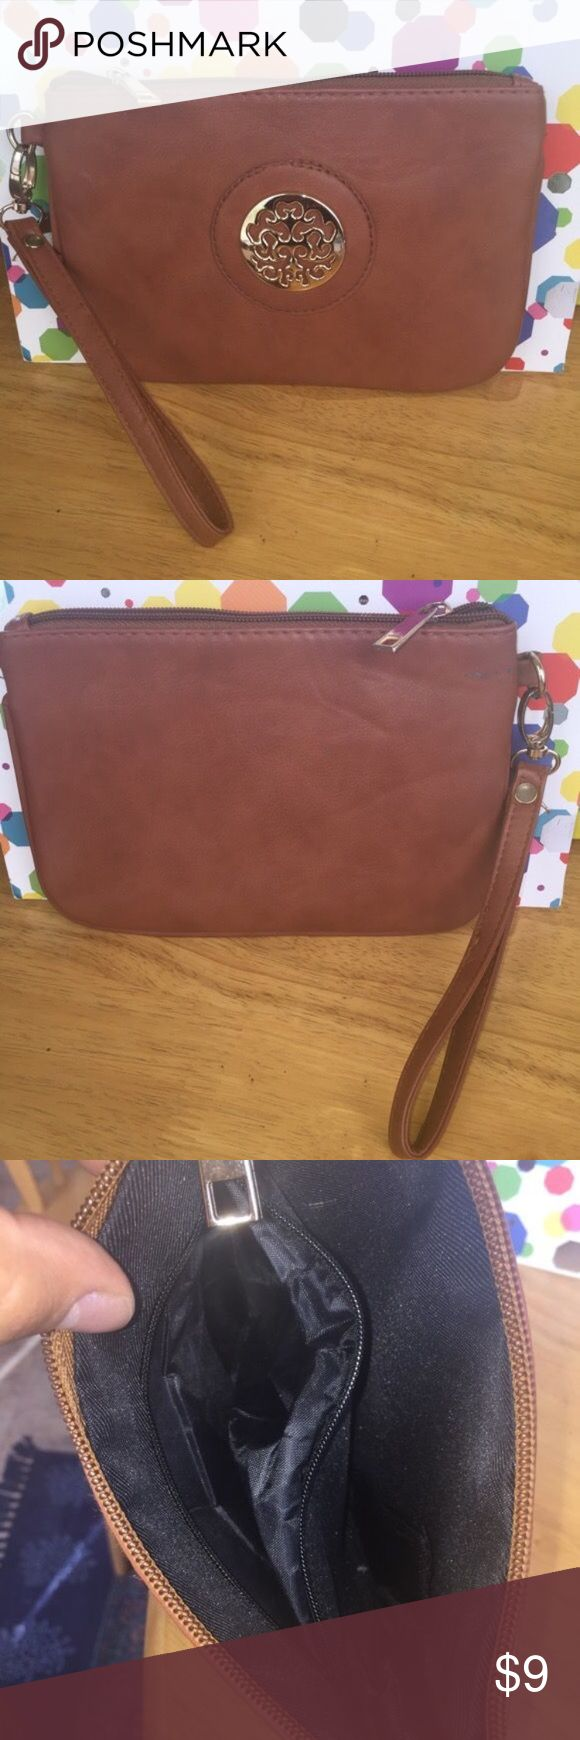 Brown clutch Great condition brown clutch Bags Clutches & Wristlets